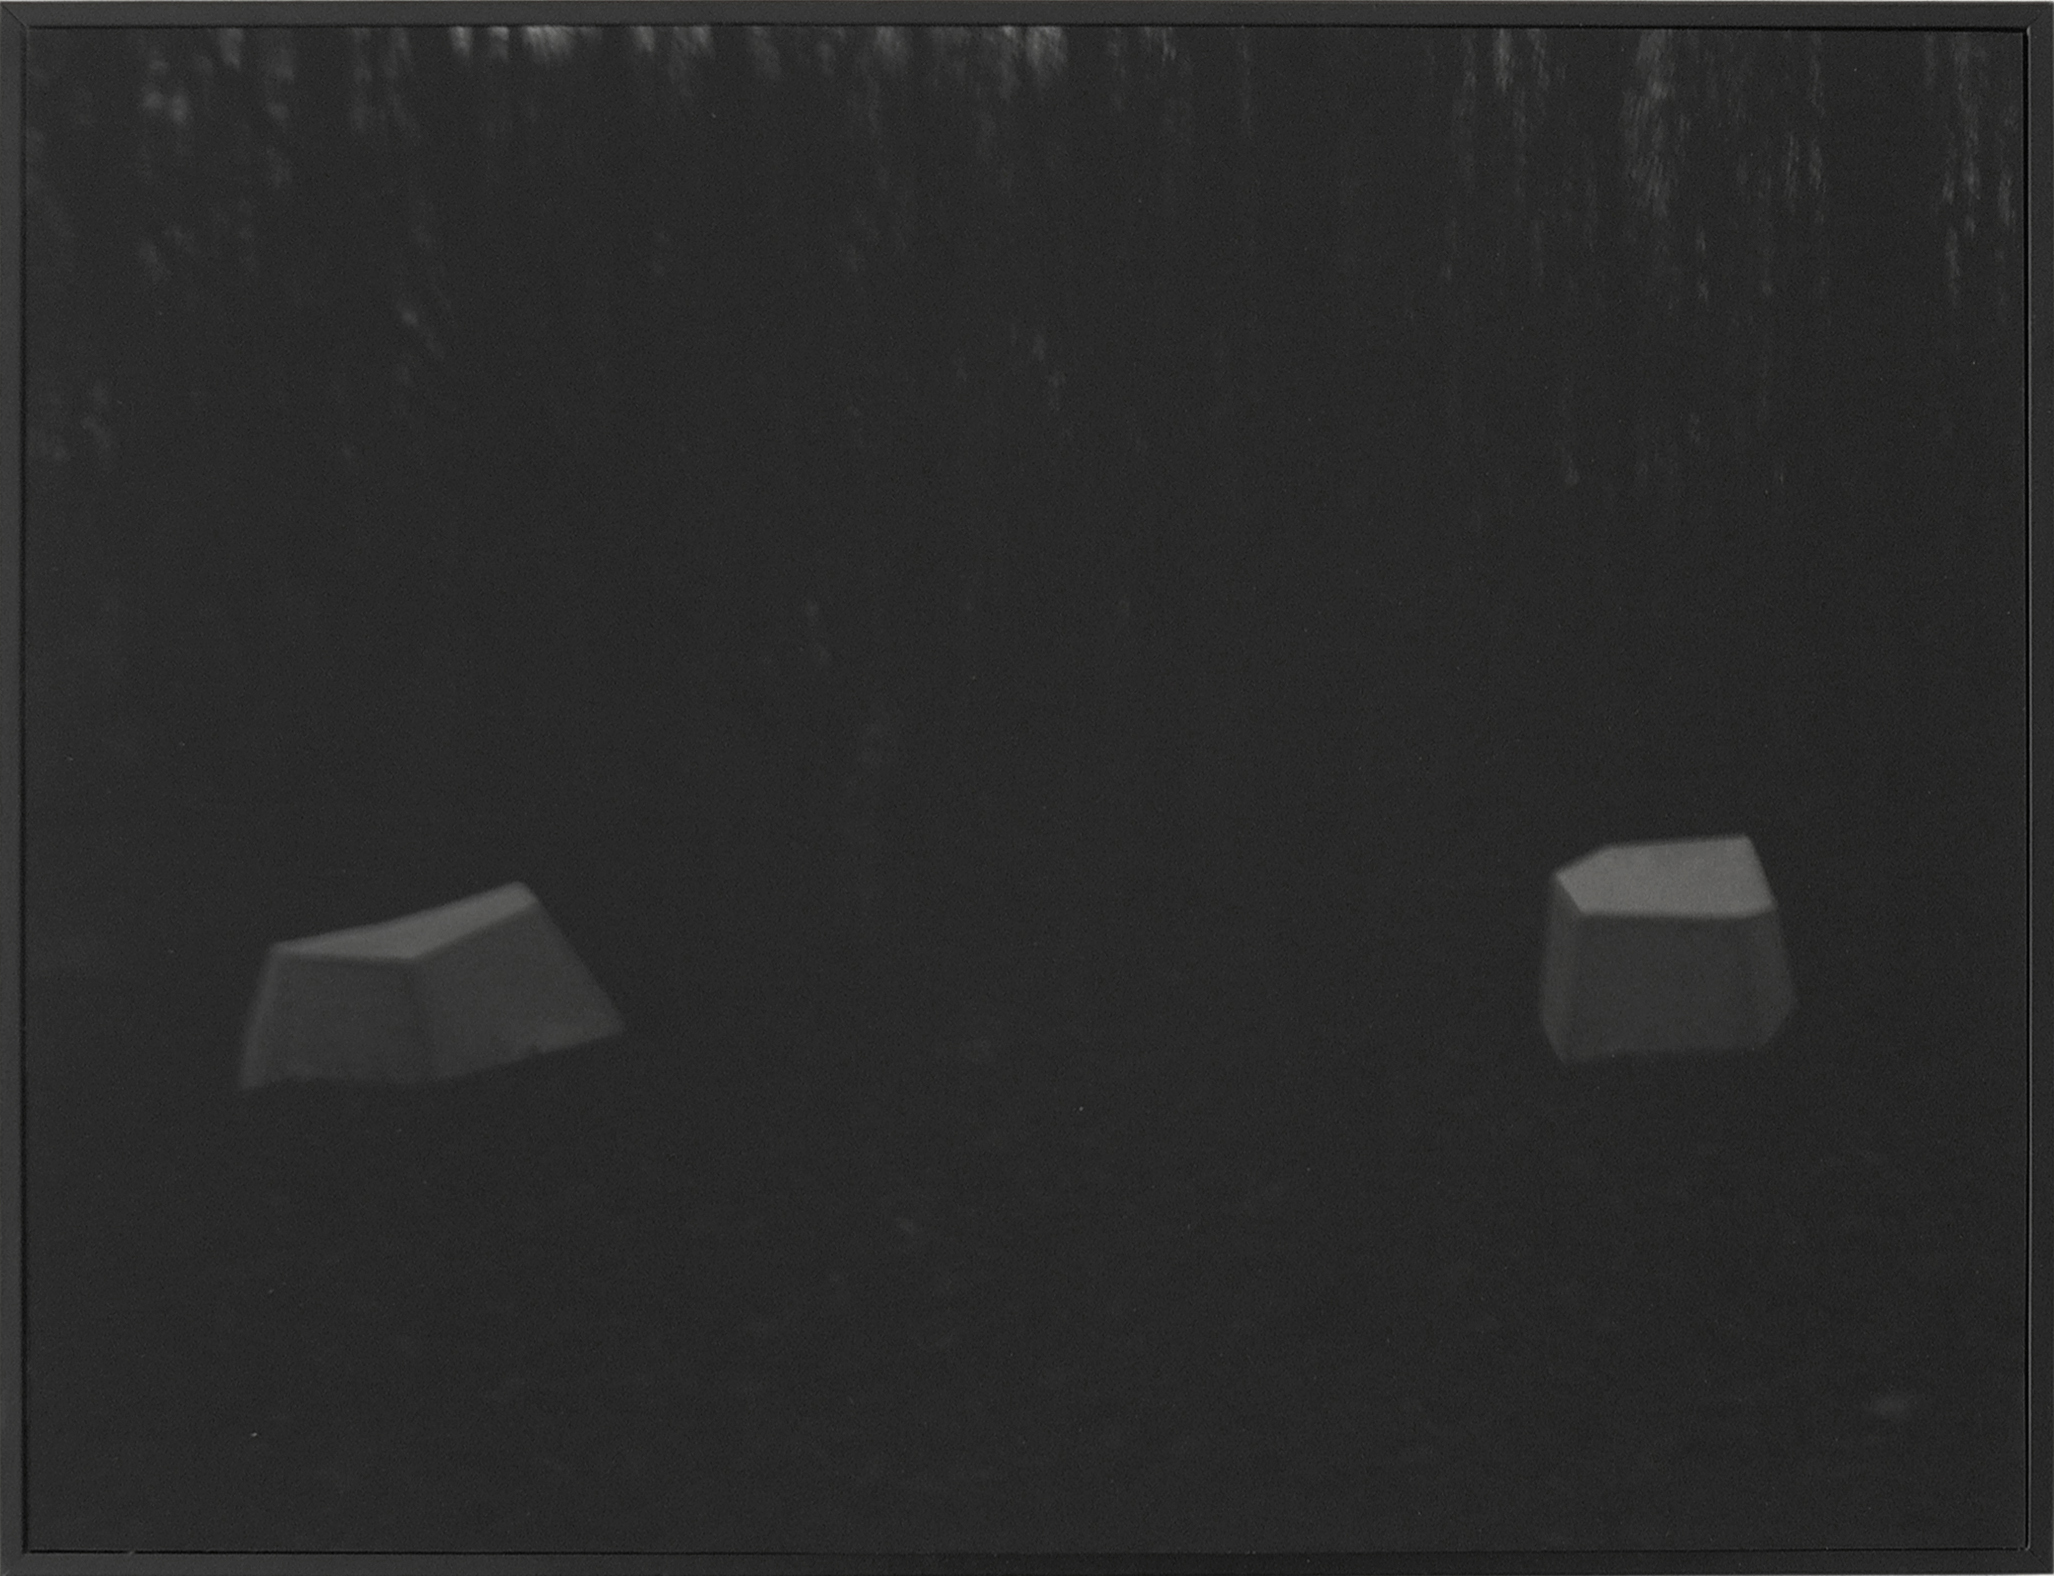 Photographs from the serie Blank Module, b/w print, Work in progress, 2015